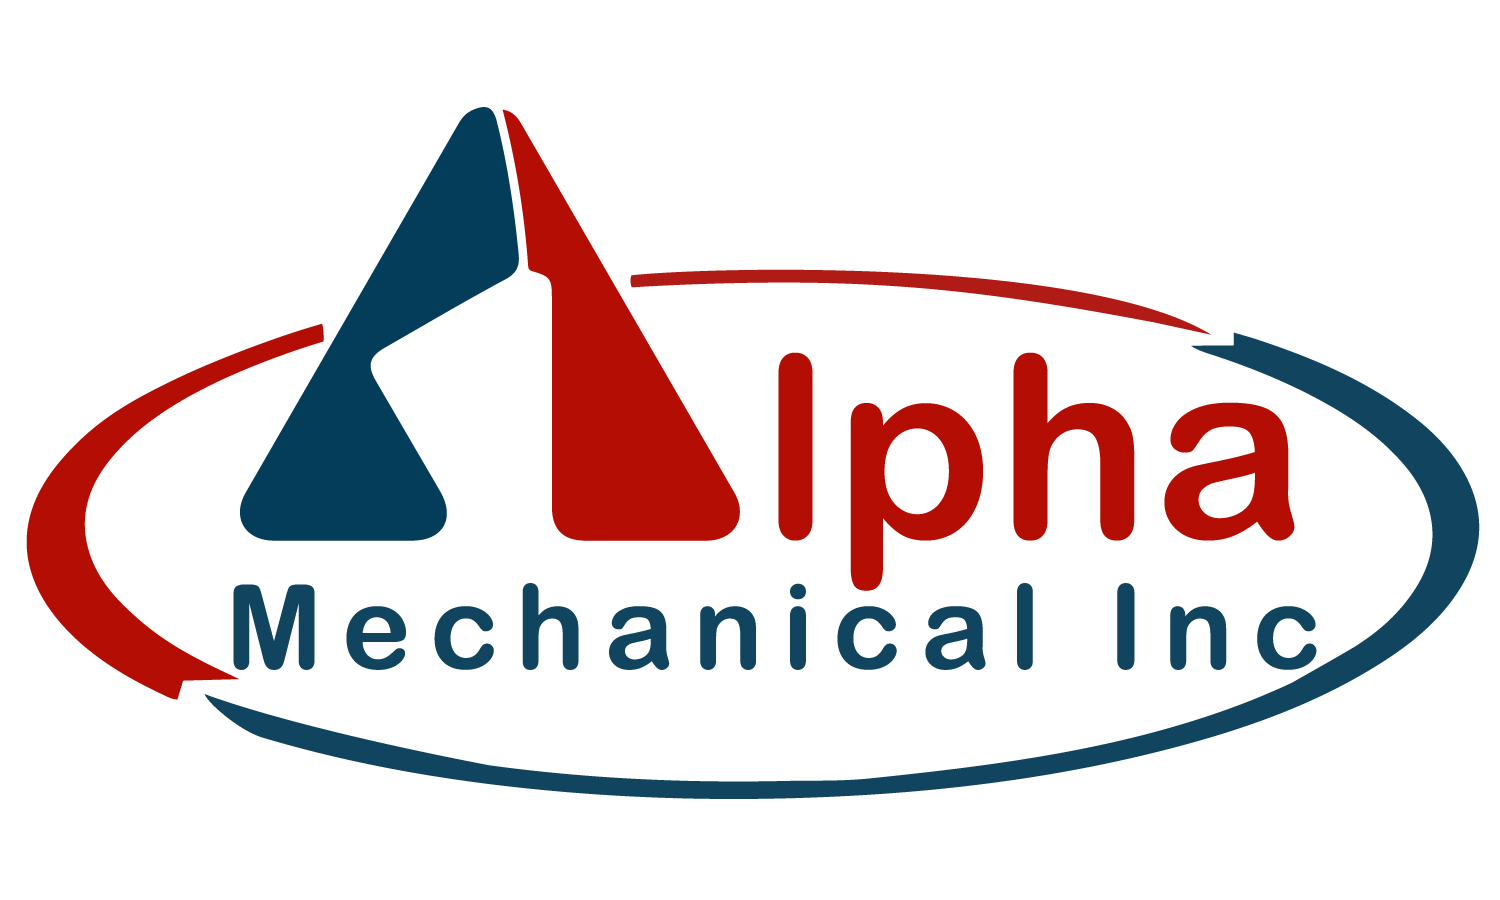 Alpha Mechanical Inc.